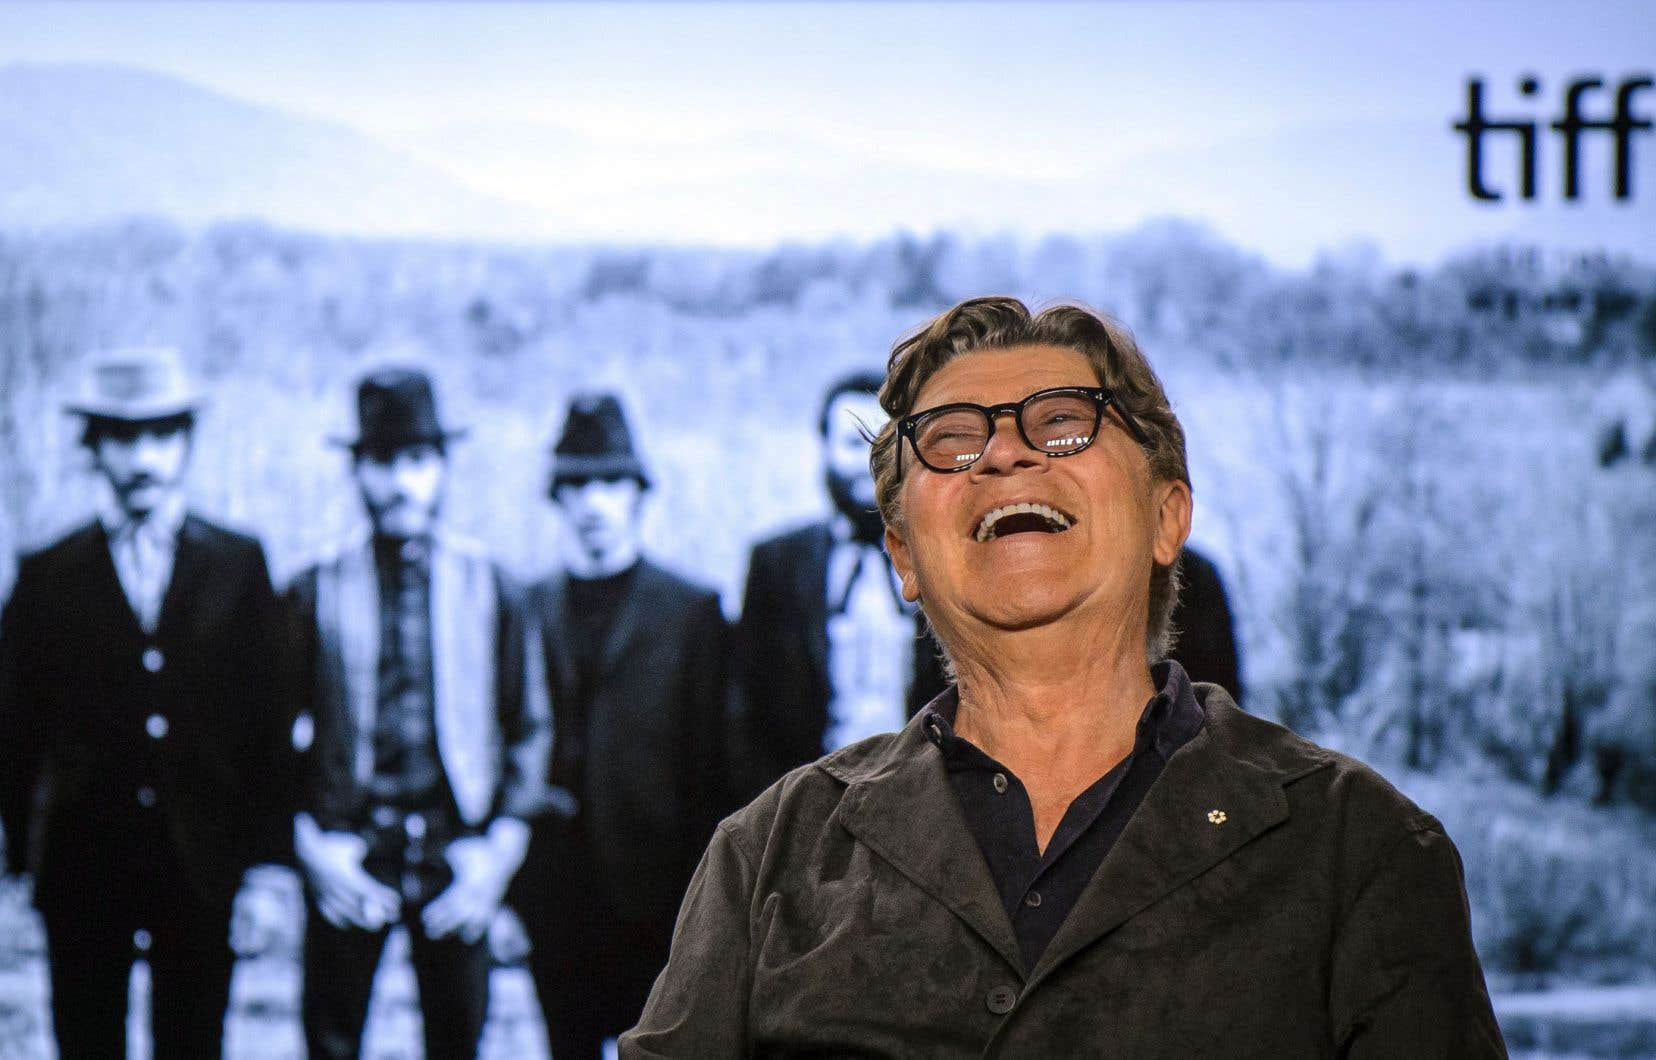 Le musicien Robbie Robertson, parolier du groupe The Band, est l'objet d'un film biographique — «Once Were Brothers: Robbie Robertson and The Band» — qui ouvrait jeudi le Festival international du film de Toronto.